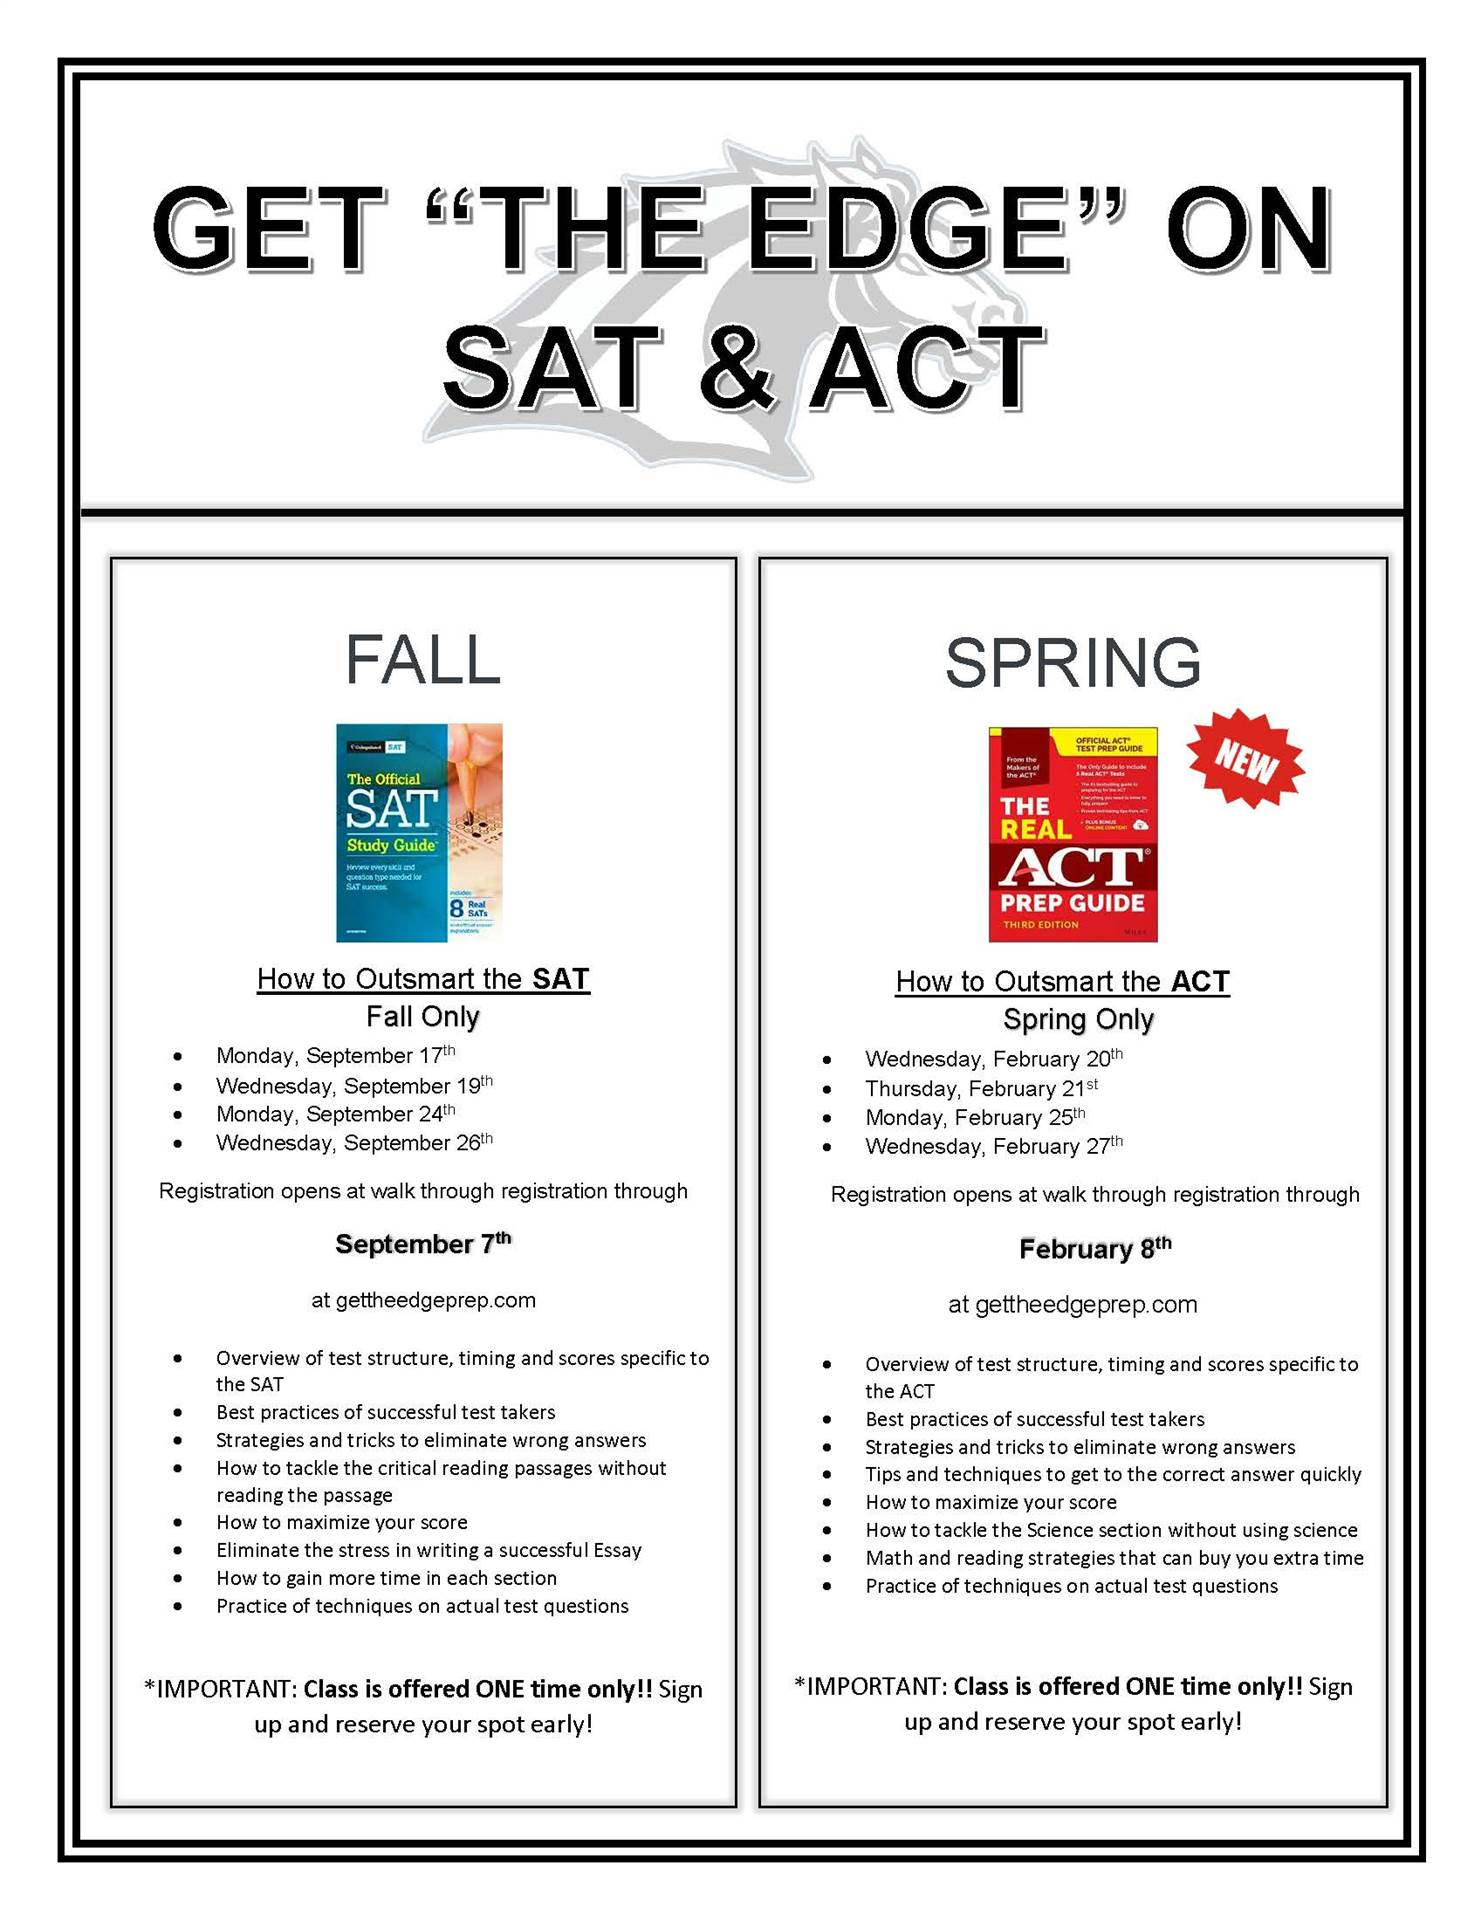 How to Outsmart the SAT